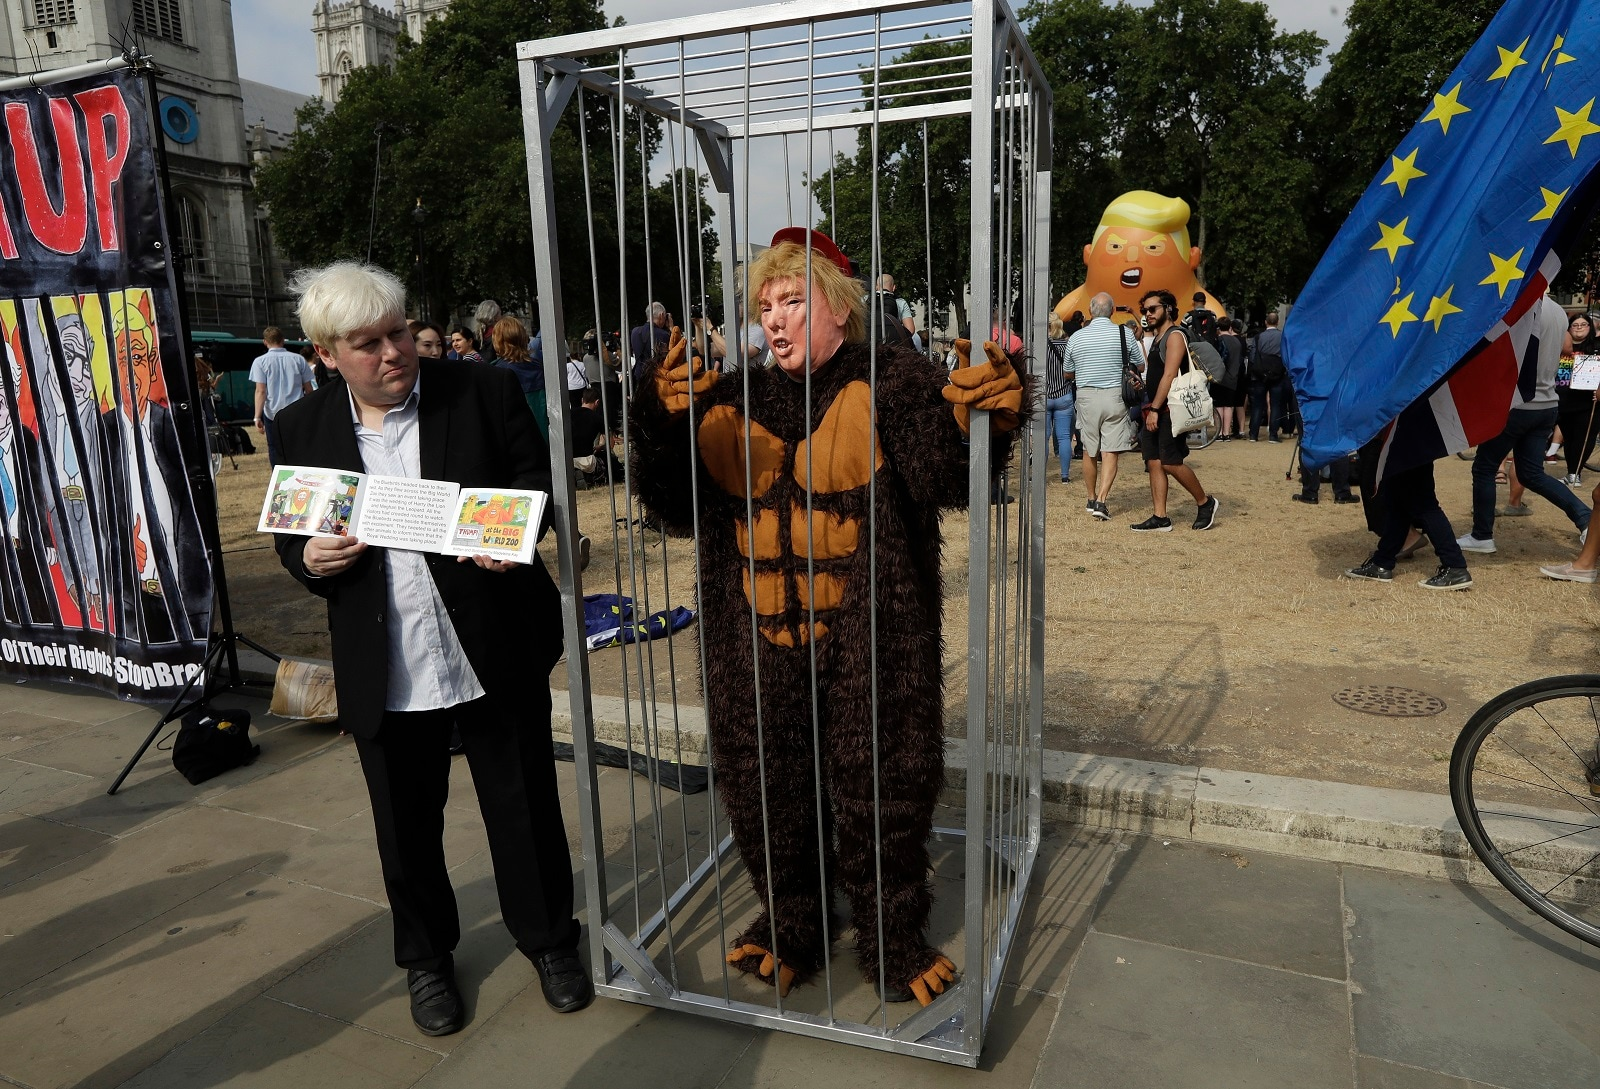 A lookalike of former British Foreign Minister Boris Johnson stands next to a person in a cage wearing a money suit and a mask of U.S. President Donald Trump as a six-meter high cartoon baby blimp of Trump is inflated as a protest against his visit, in Parliament Square in London, England, on July 13, 2018. (AP Photo/Matt Dunham)